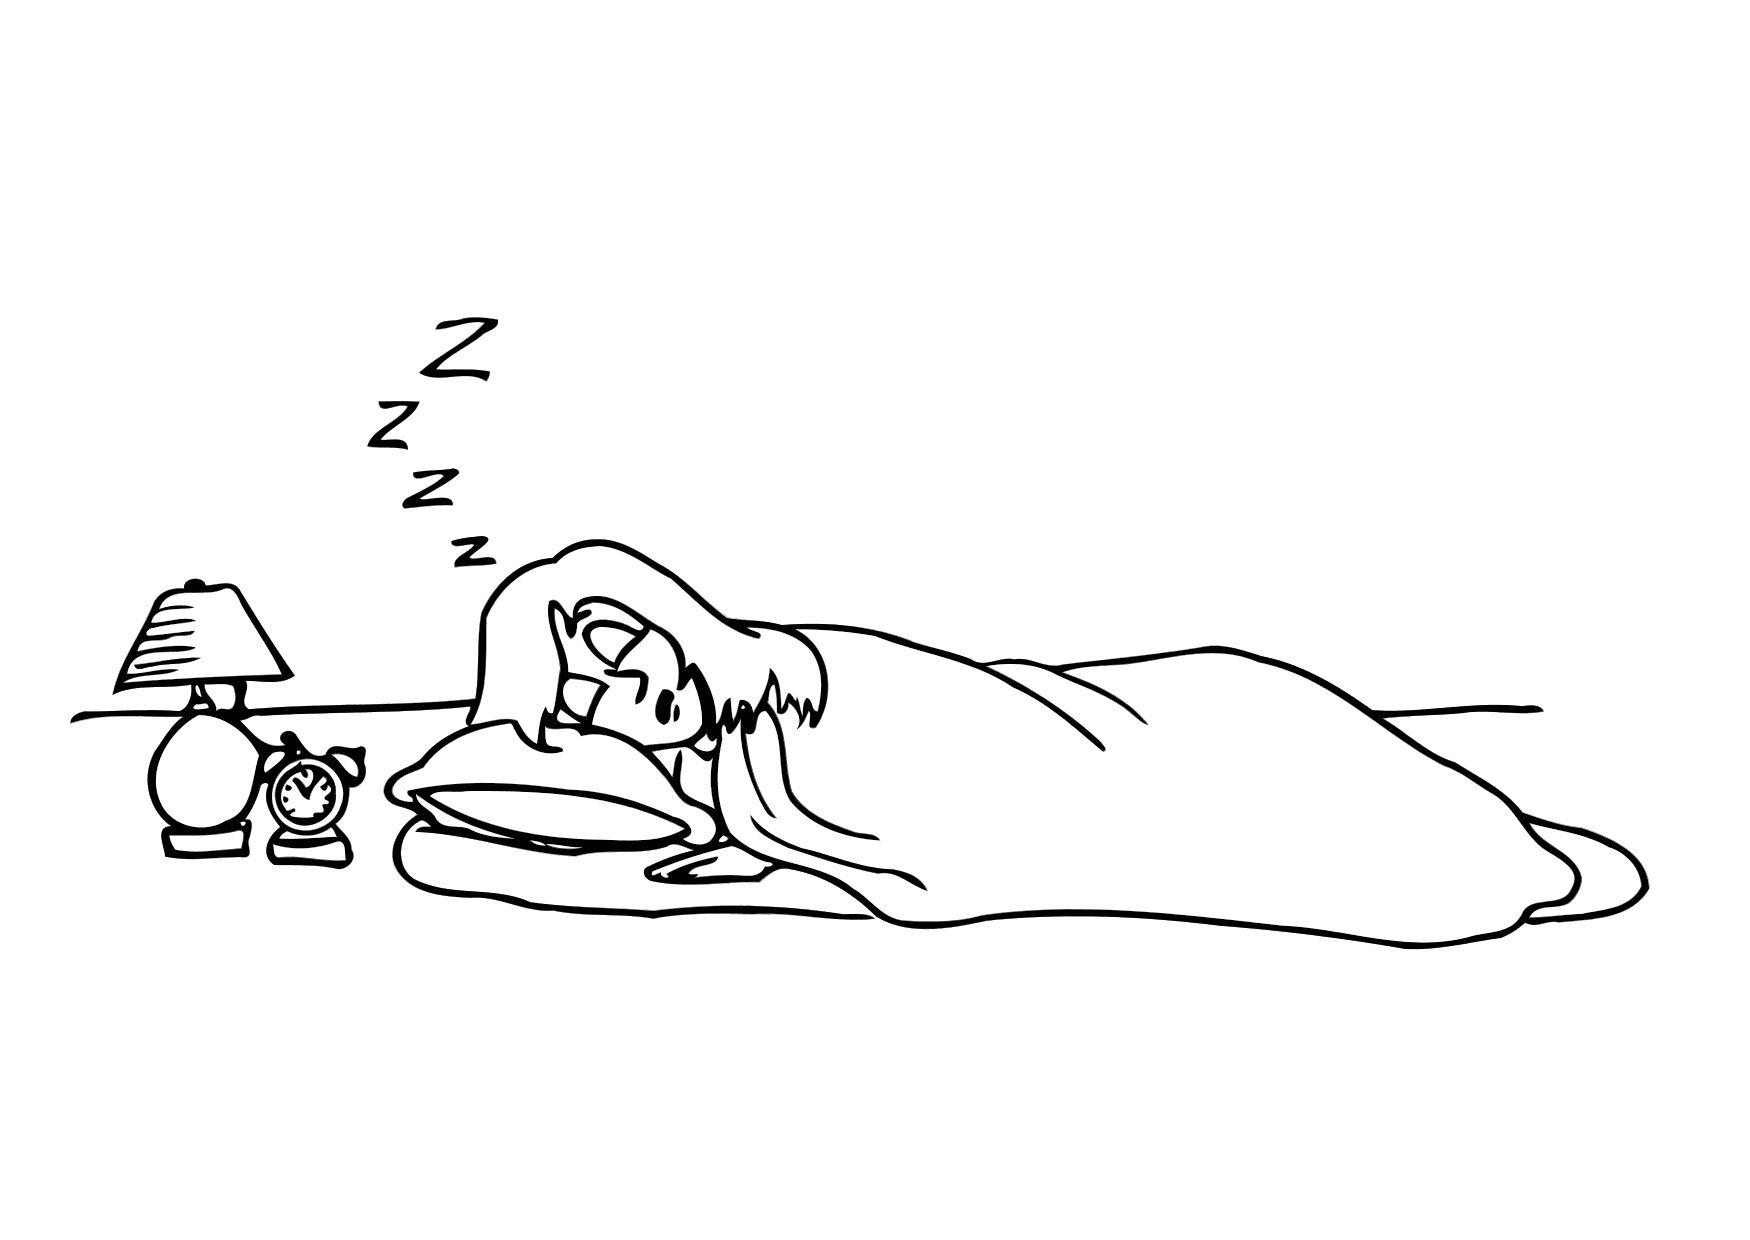 Coloring page sleeping img 12156